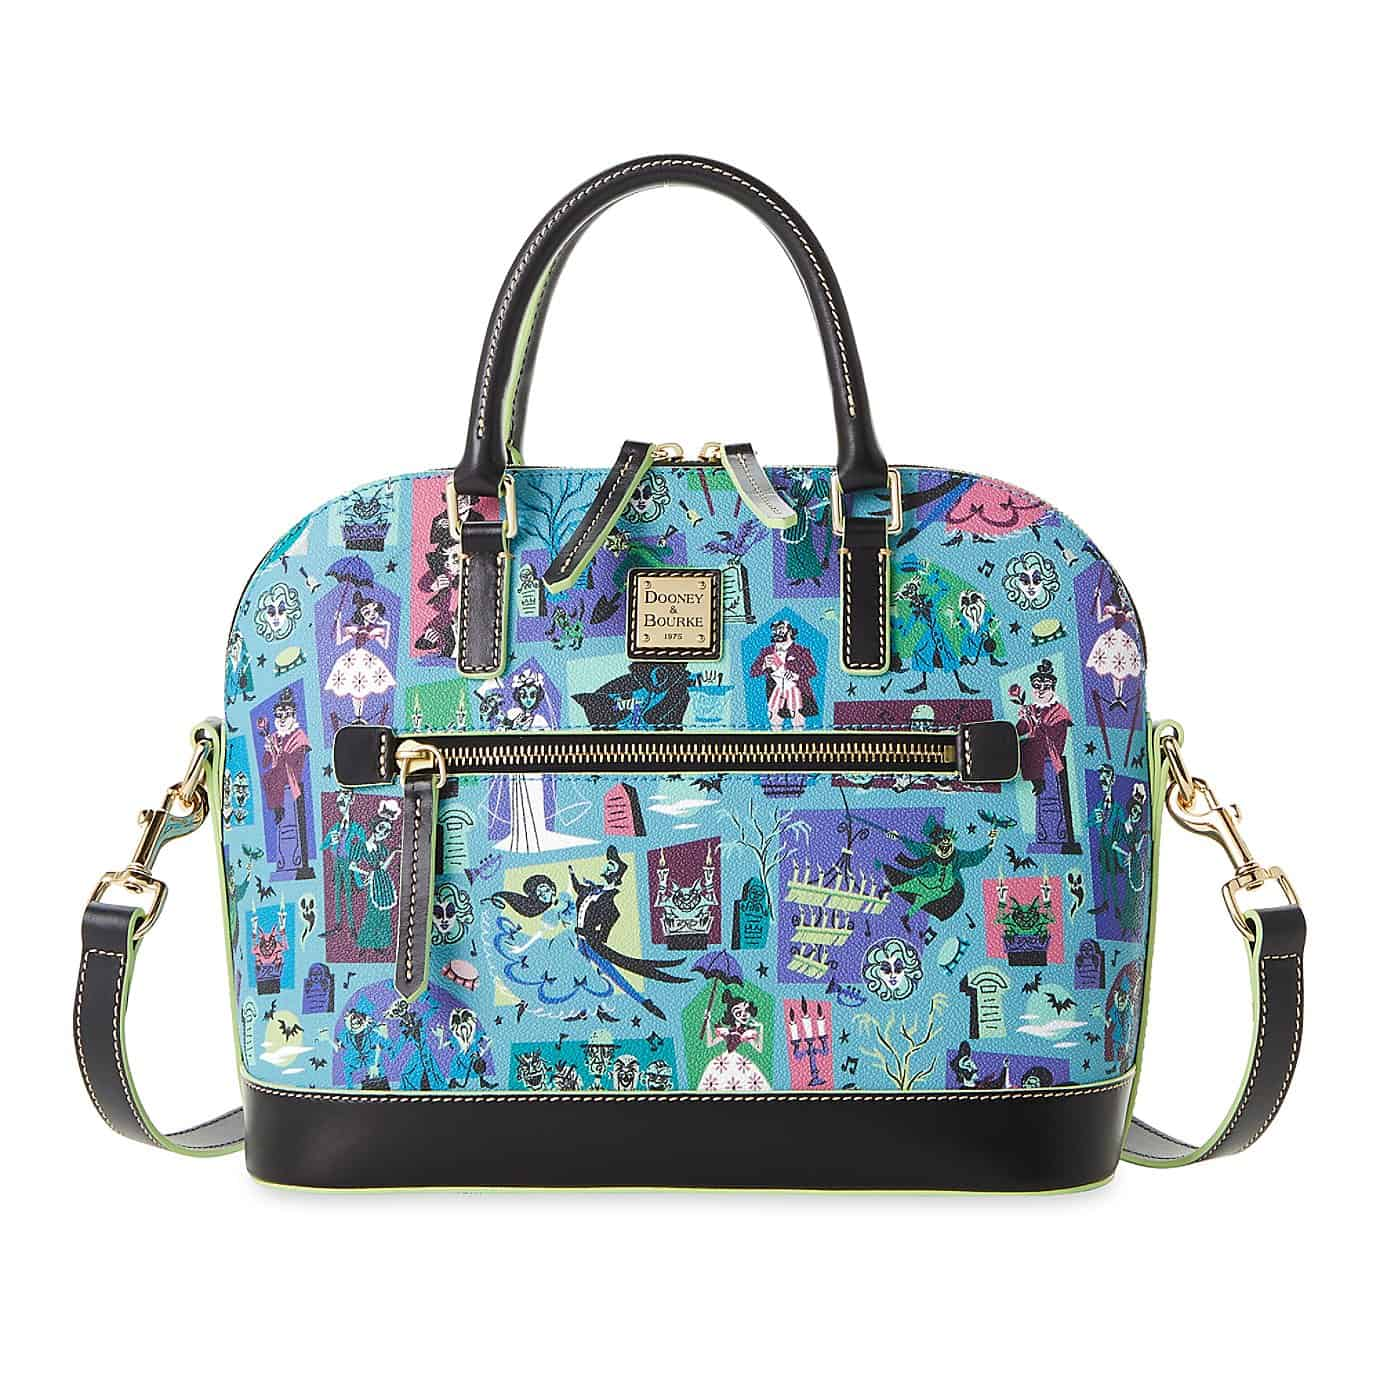 2020 haunted mansion dooney satchel